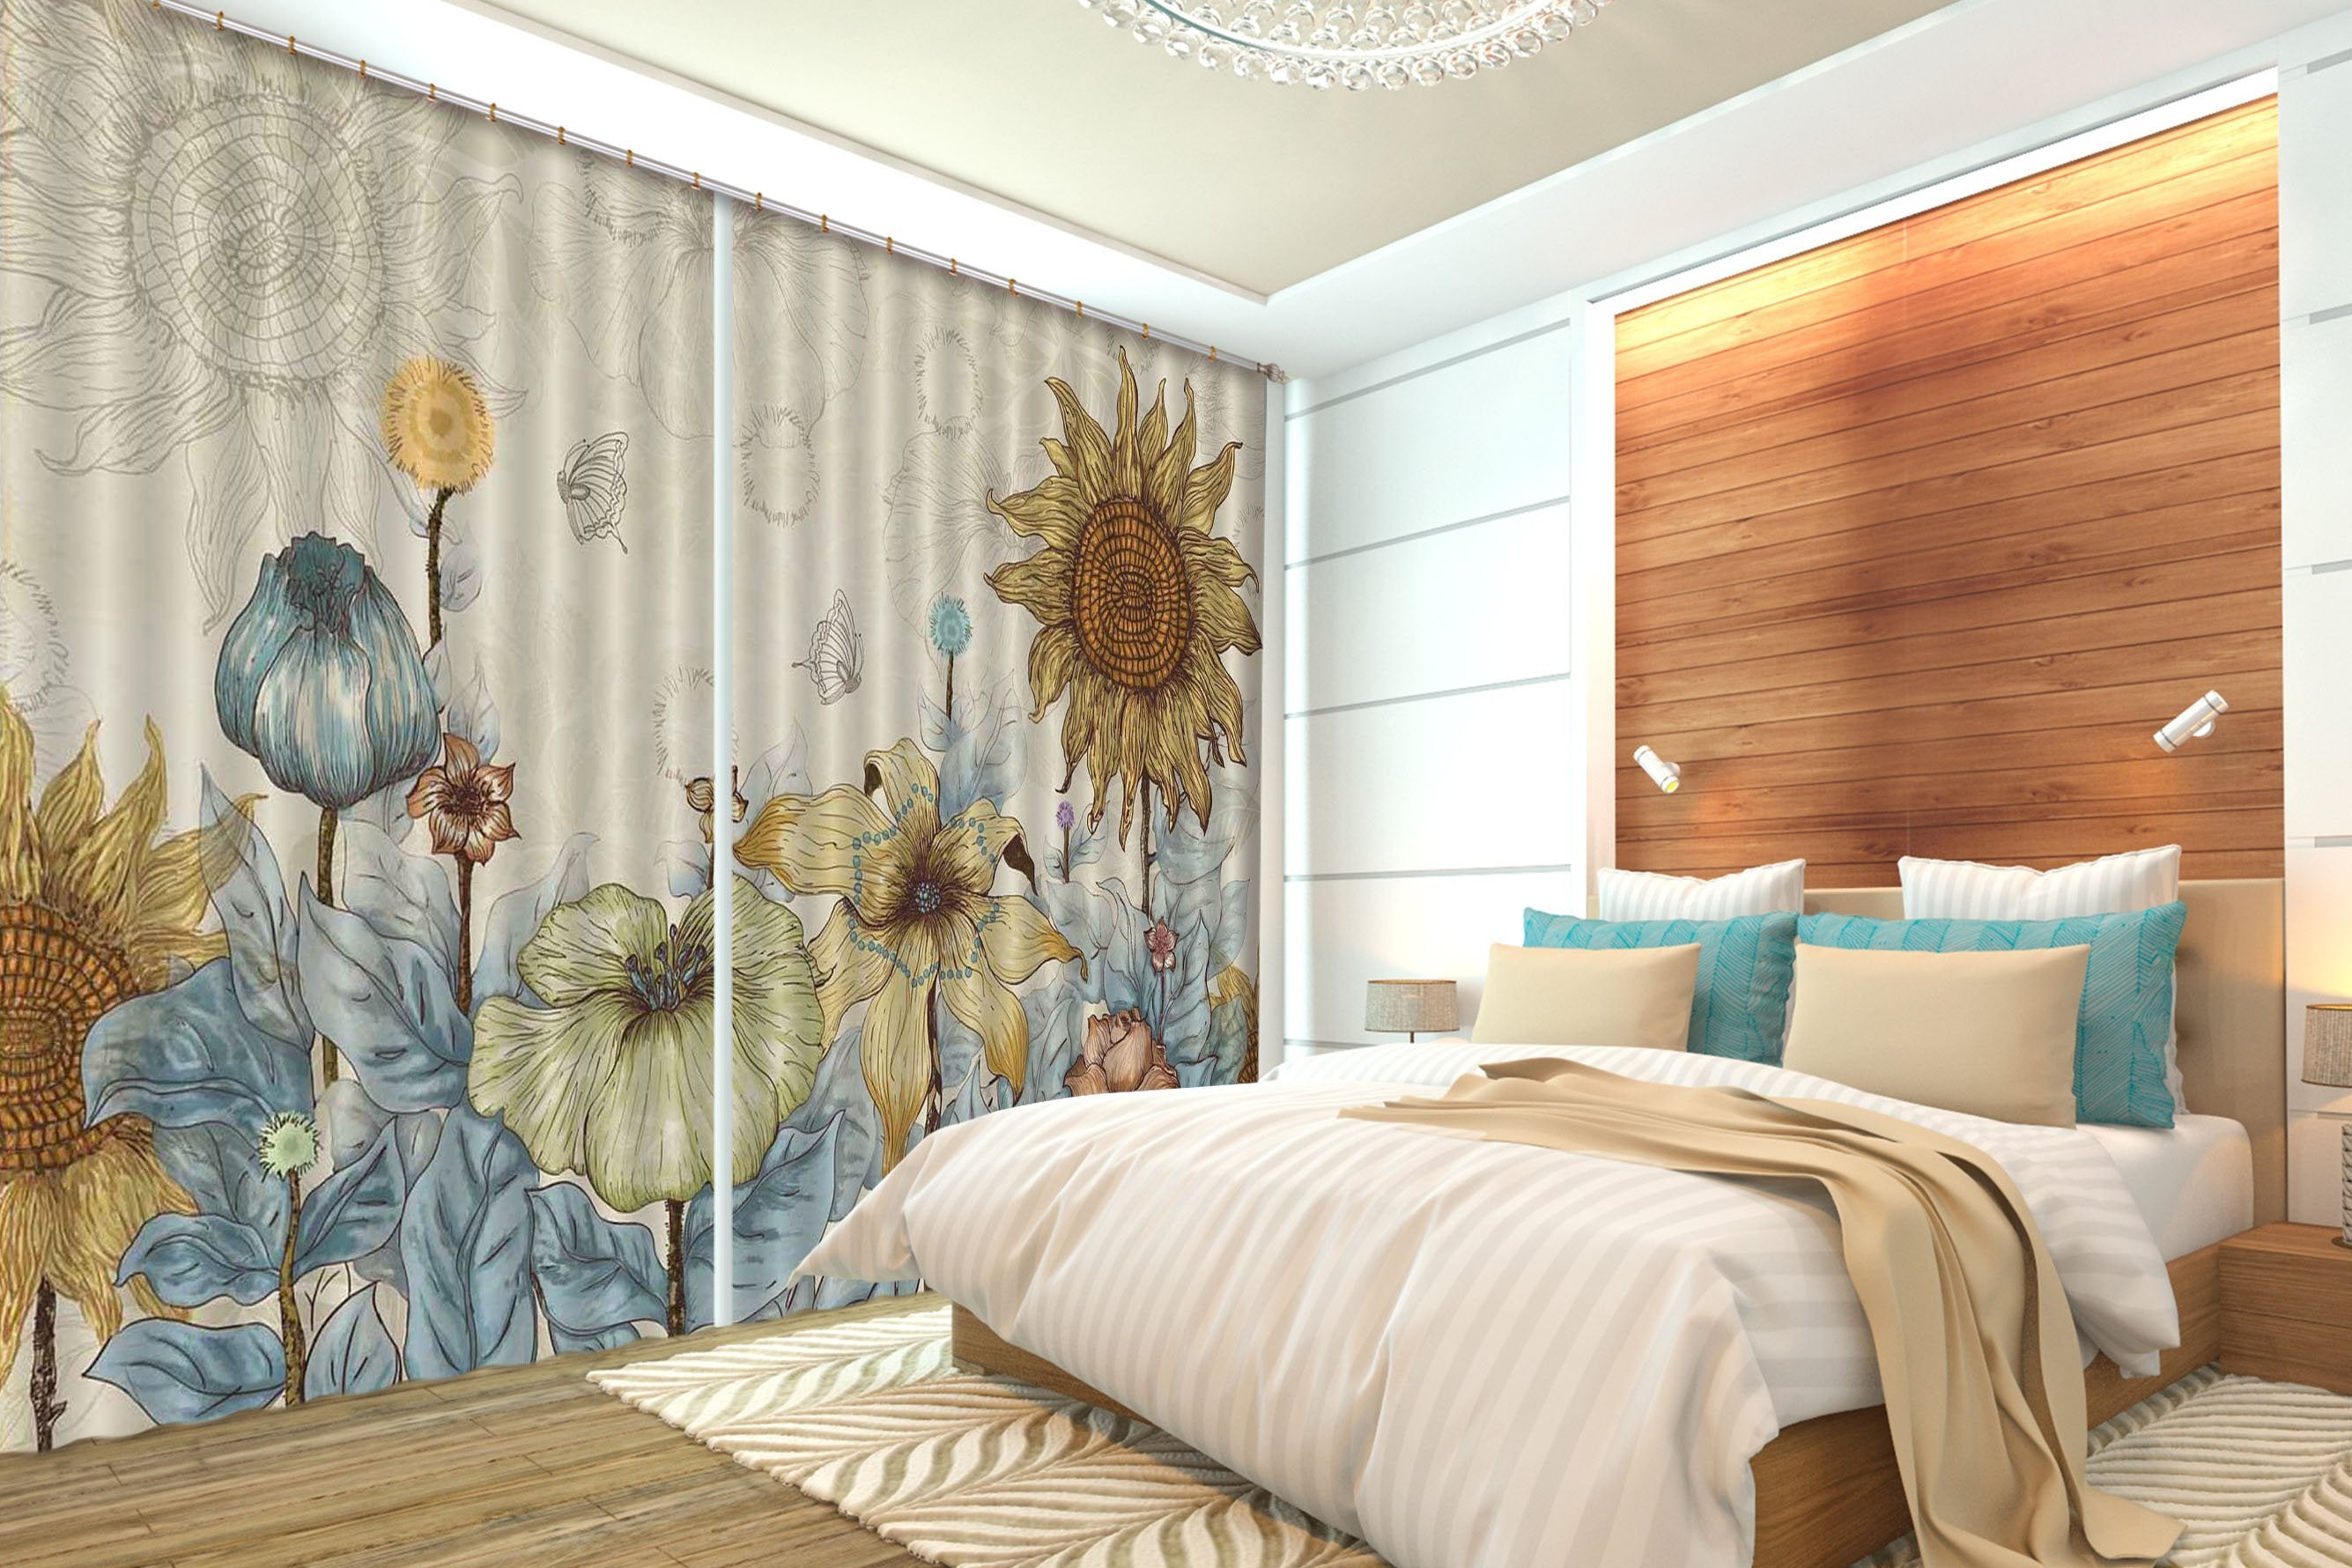 3D Flowers Pattern 2284 Curtains Drapes Wallpaper AJ Wallpaper